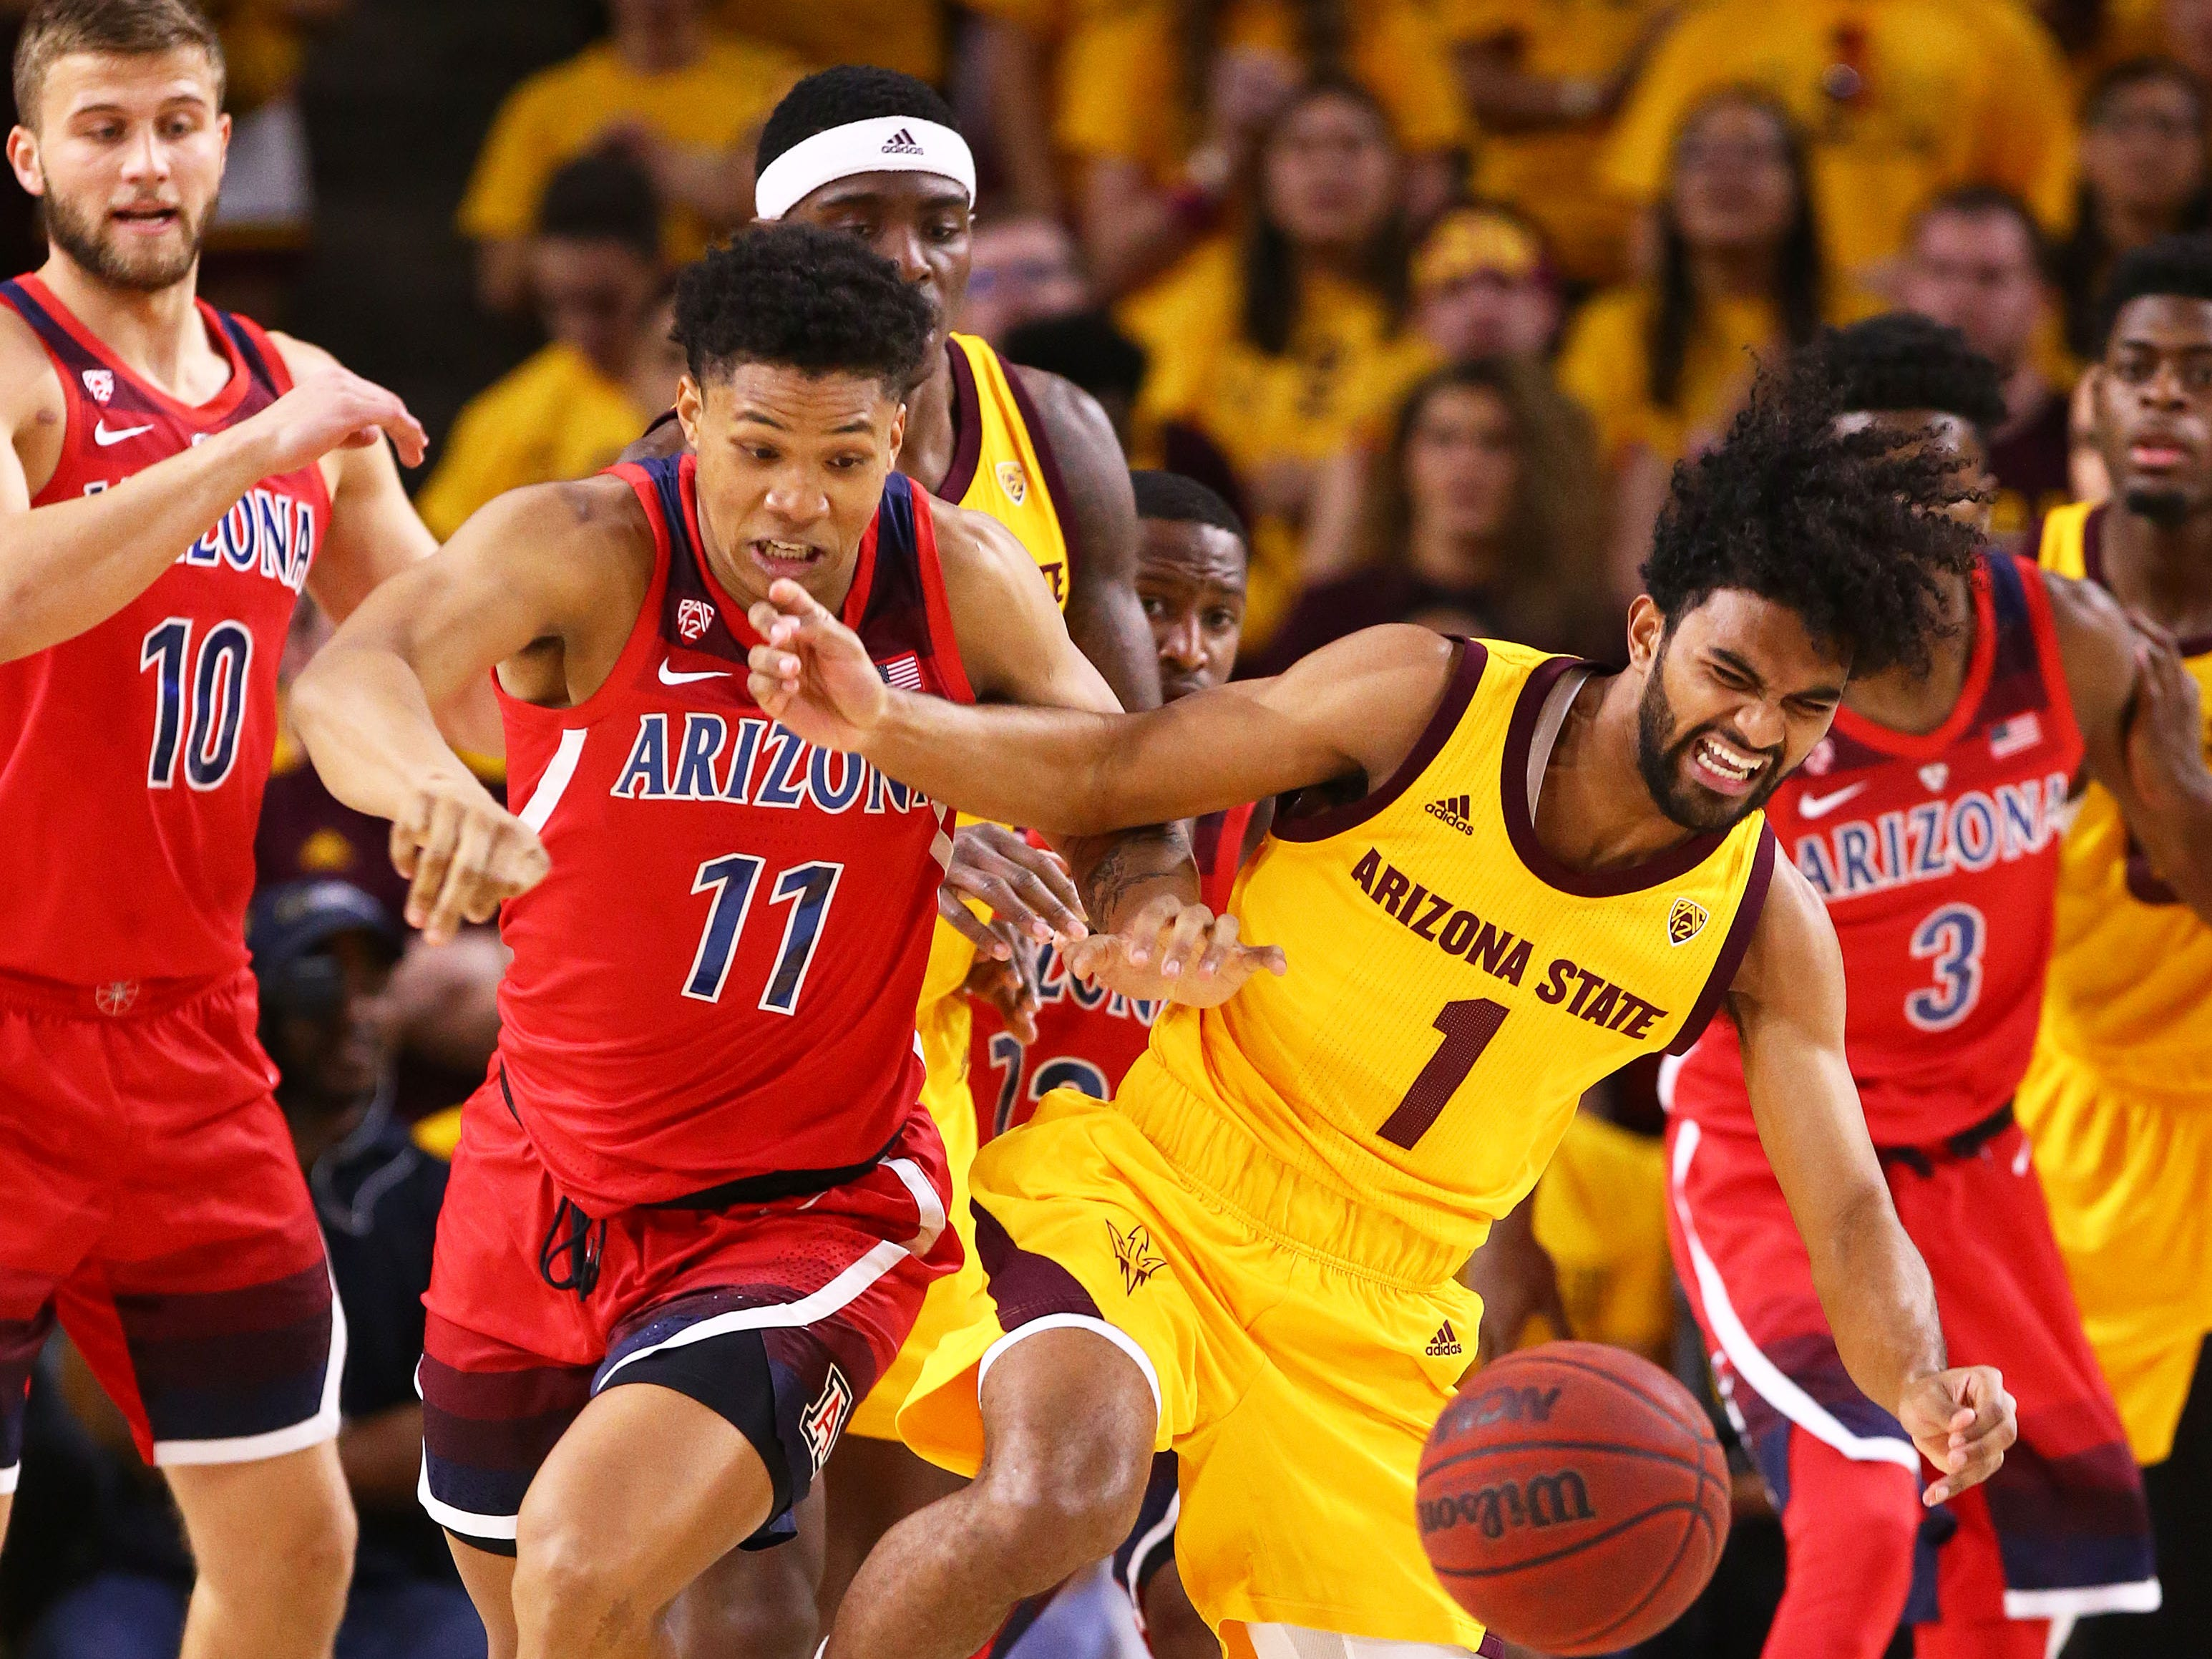 Arizona forward Ira Lee (11) against Arizona State guard Remy Martin (1) battle for the loose ball in the first half on Jan. 31 at Wells Fargo Arena in Tempe.